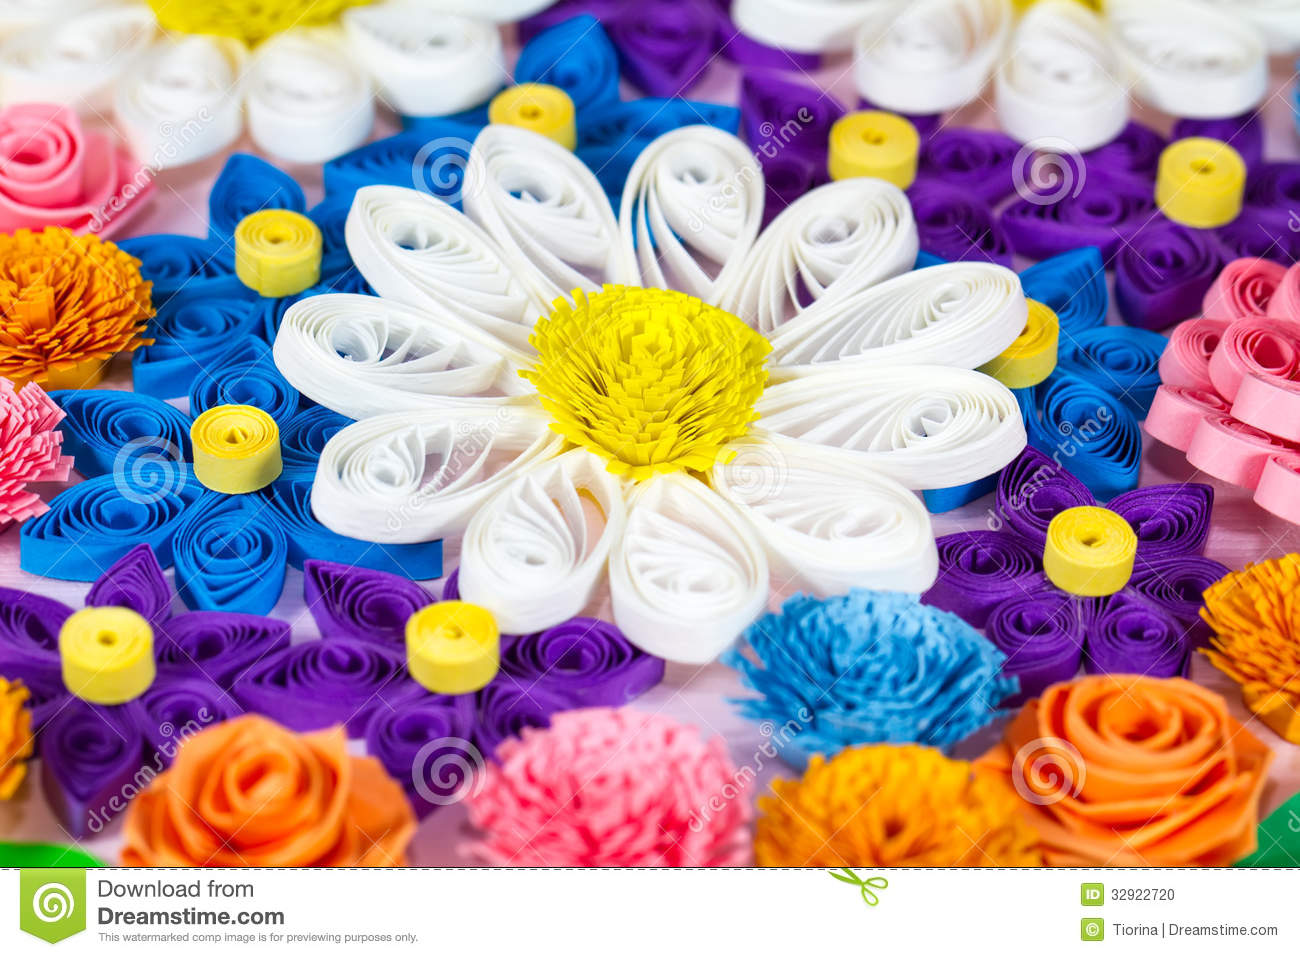 Colorful paper quilling flowers stock photo image of elements download colorful paper quilling flowers stock photo image of elements origami 32922720 mightylinksfo